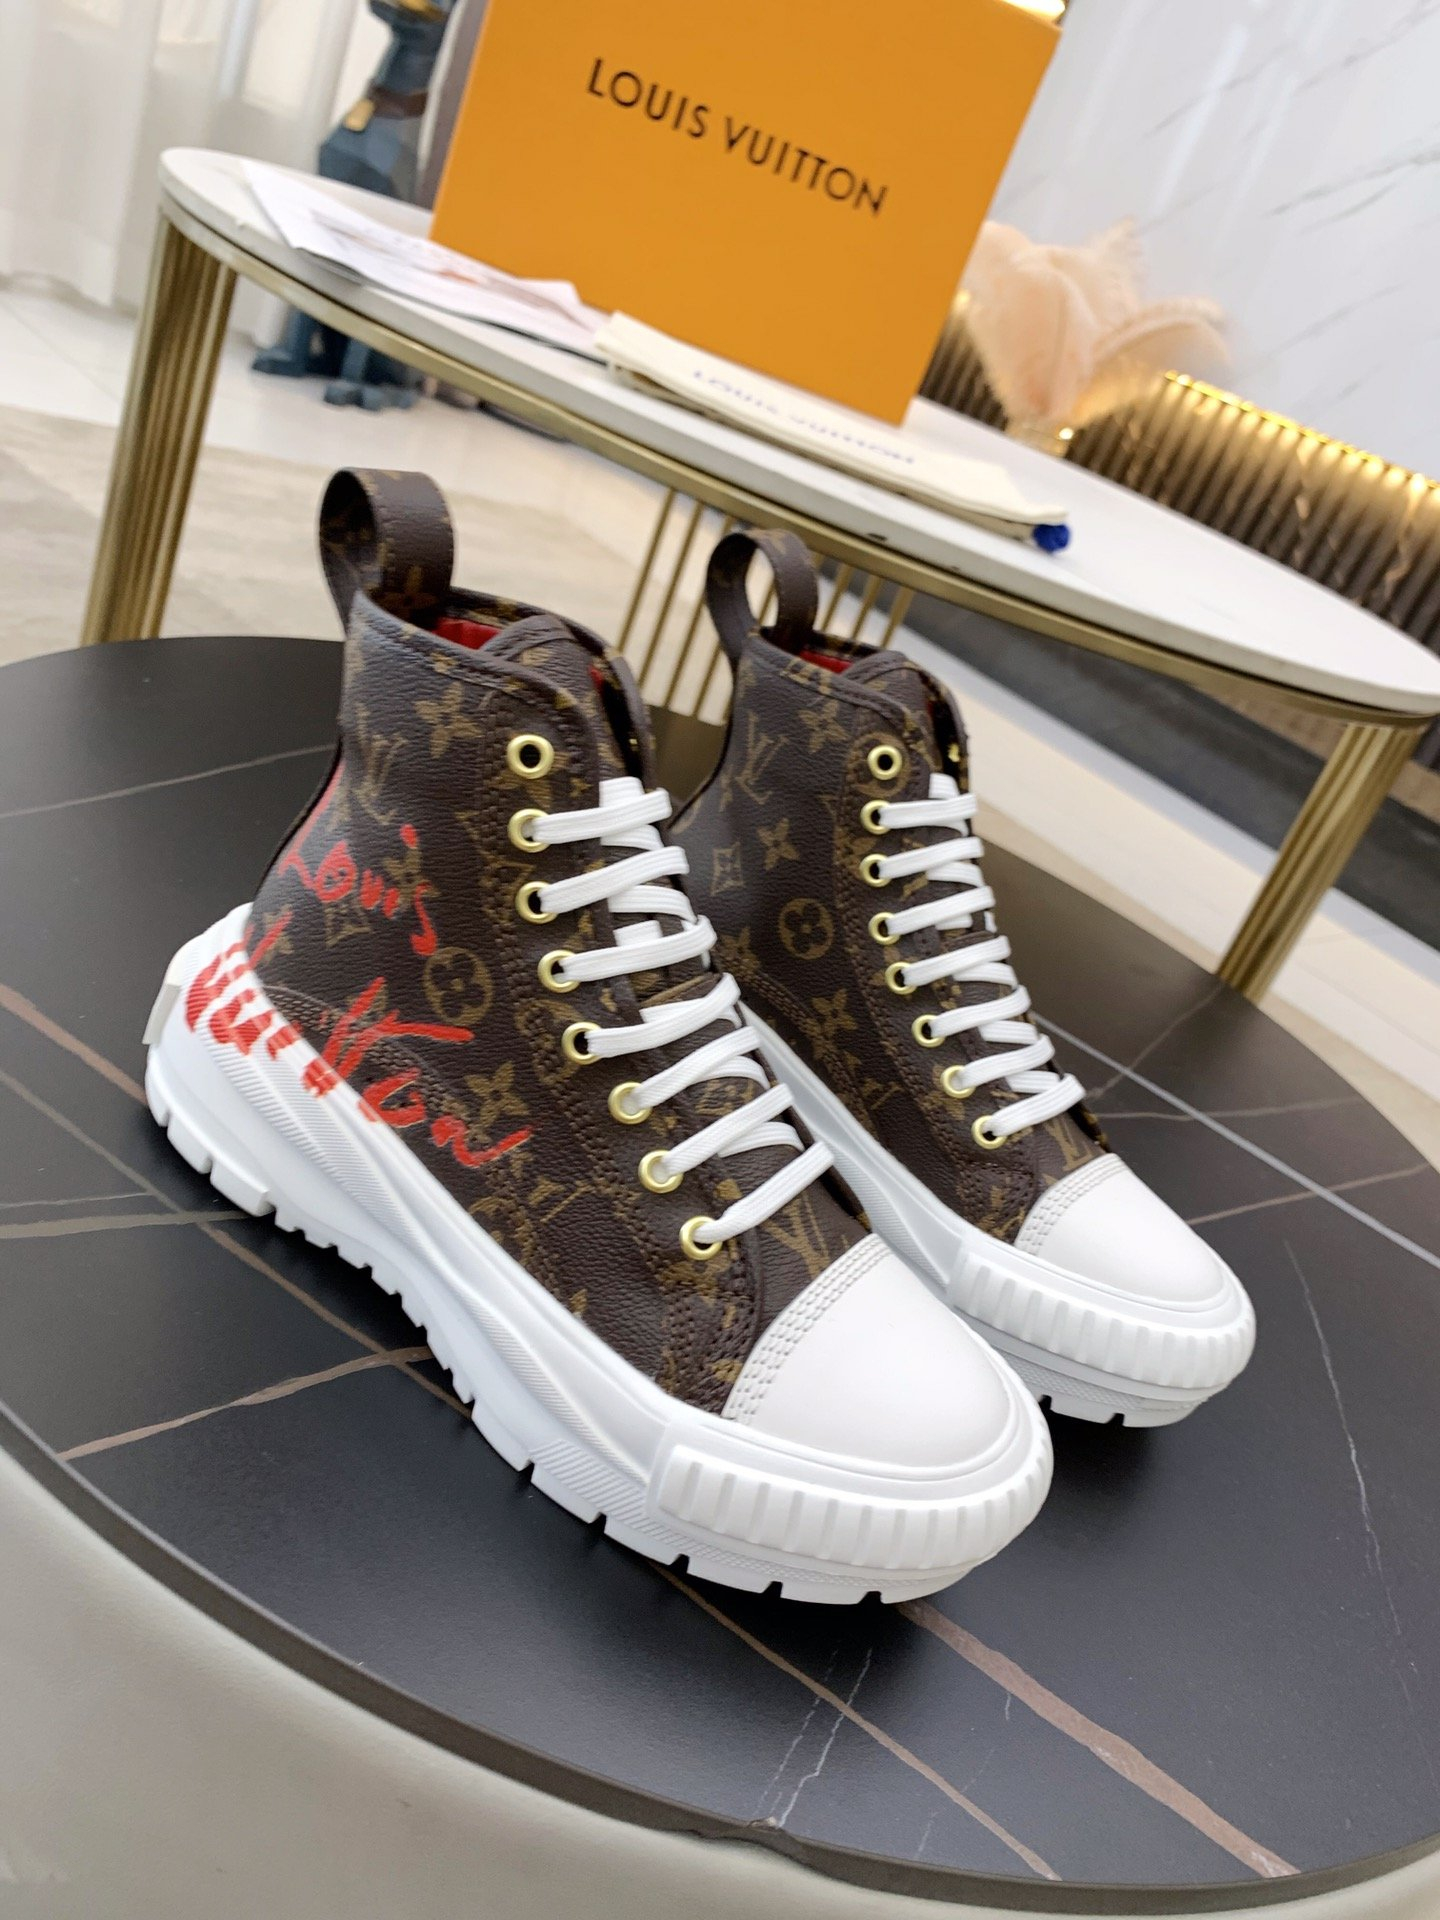 Image of LV Louis Vuitton Women's Recreation Shoes Casual Shoes Sneaker Sport Running Shoes 08522